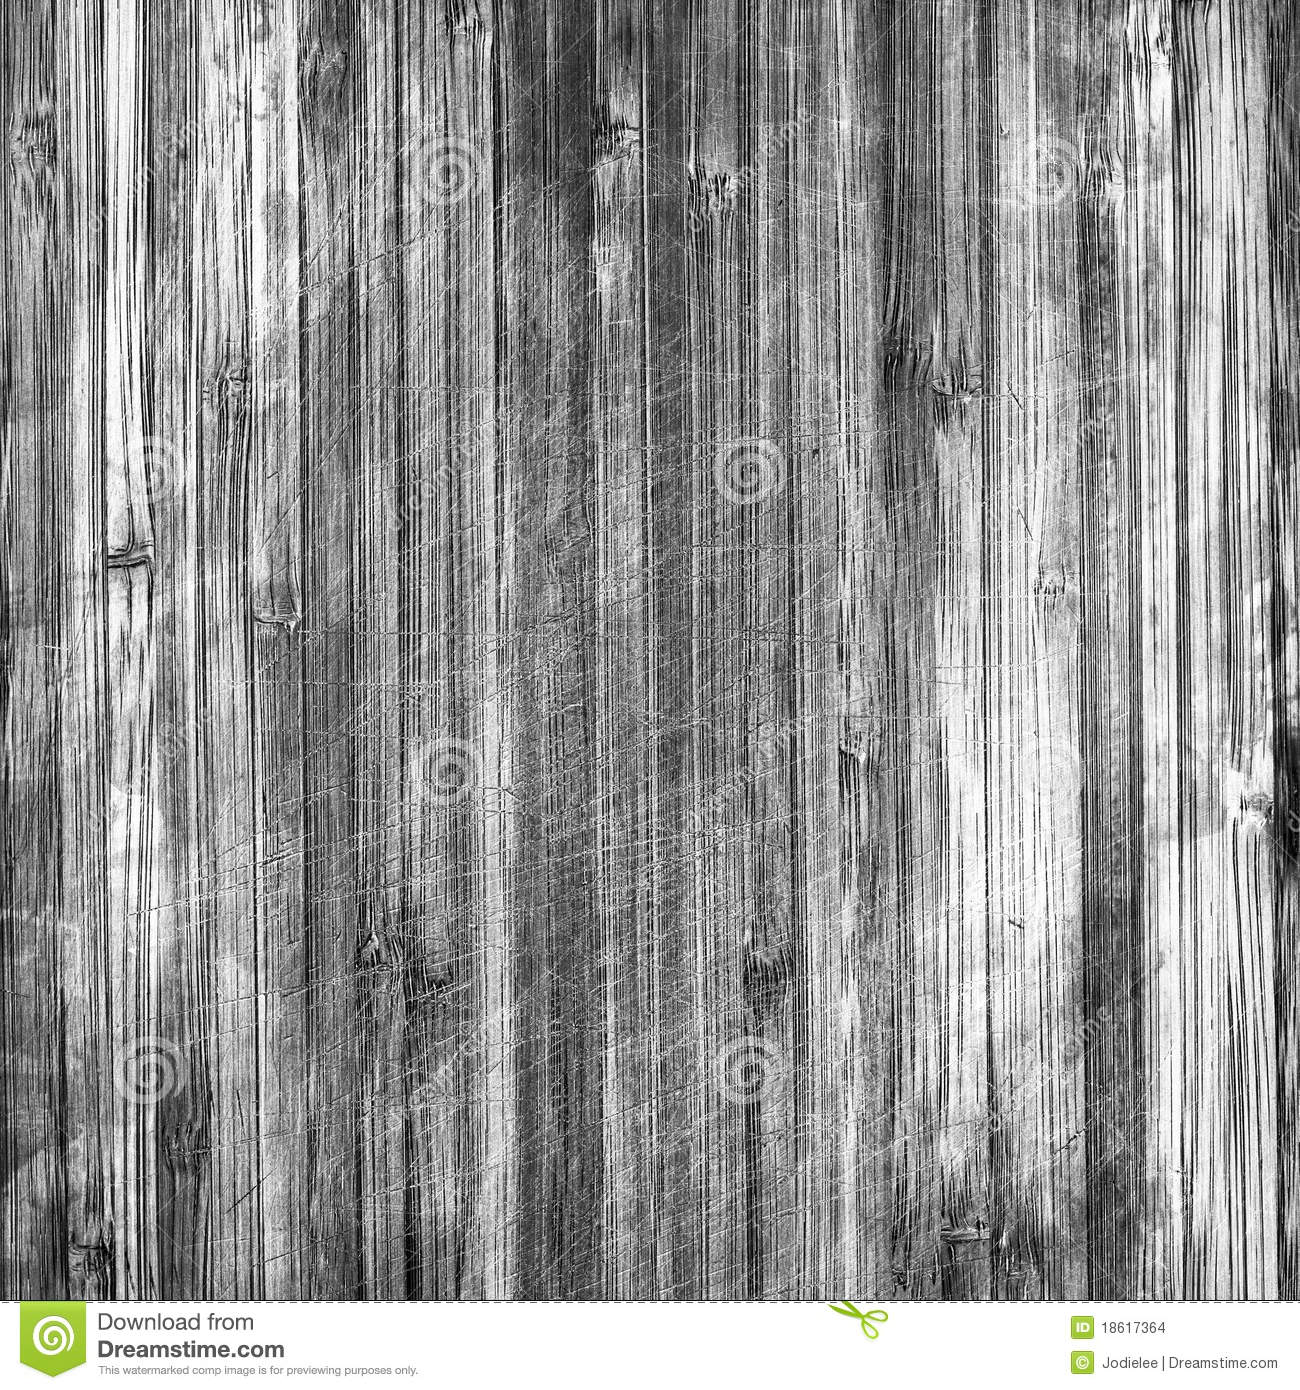 black and white vintage wood grain texture stock illustration illustration of white grungy. Black Bedroom Furniture Sets. Home Design Ideas